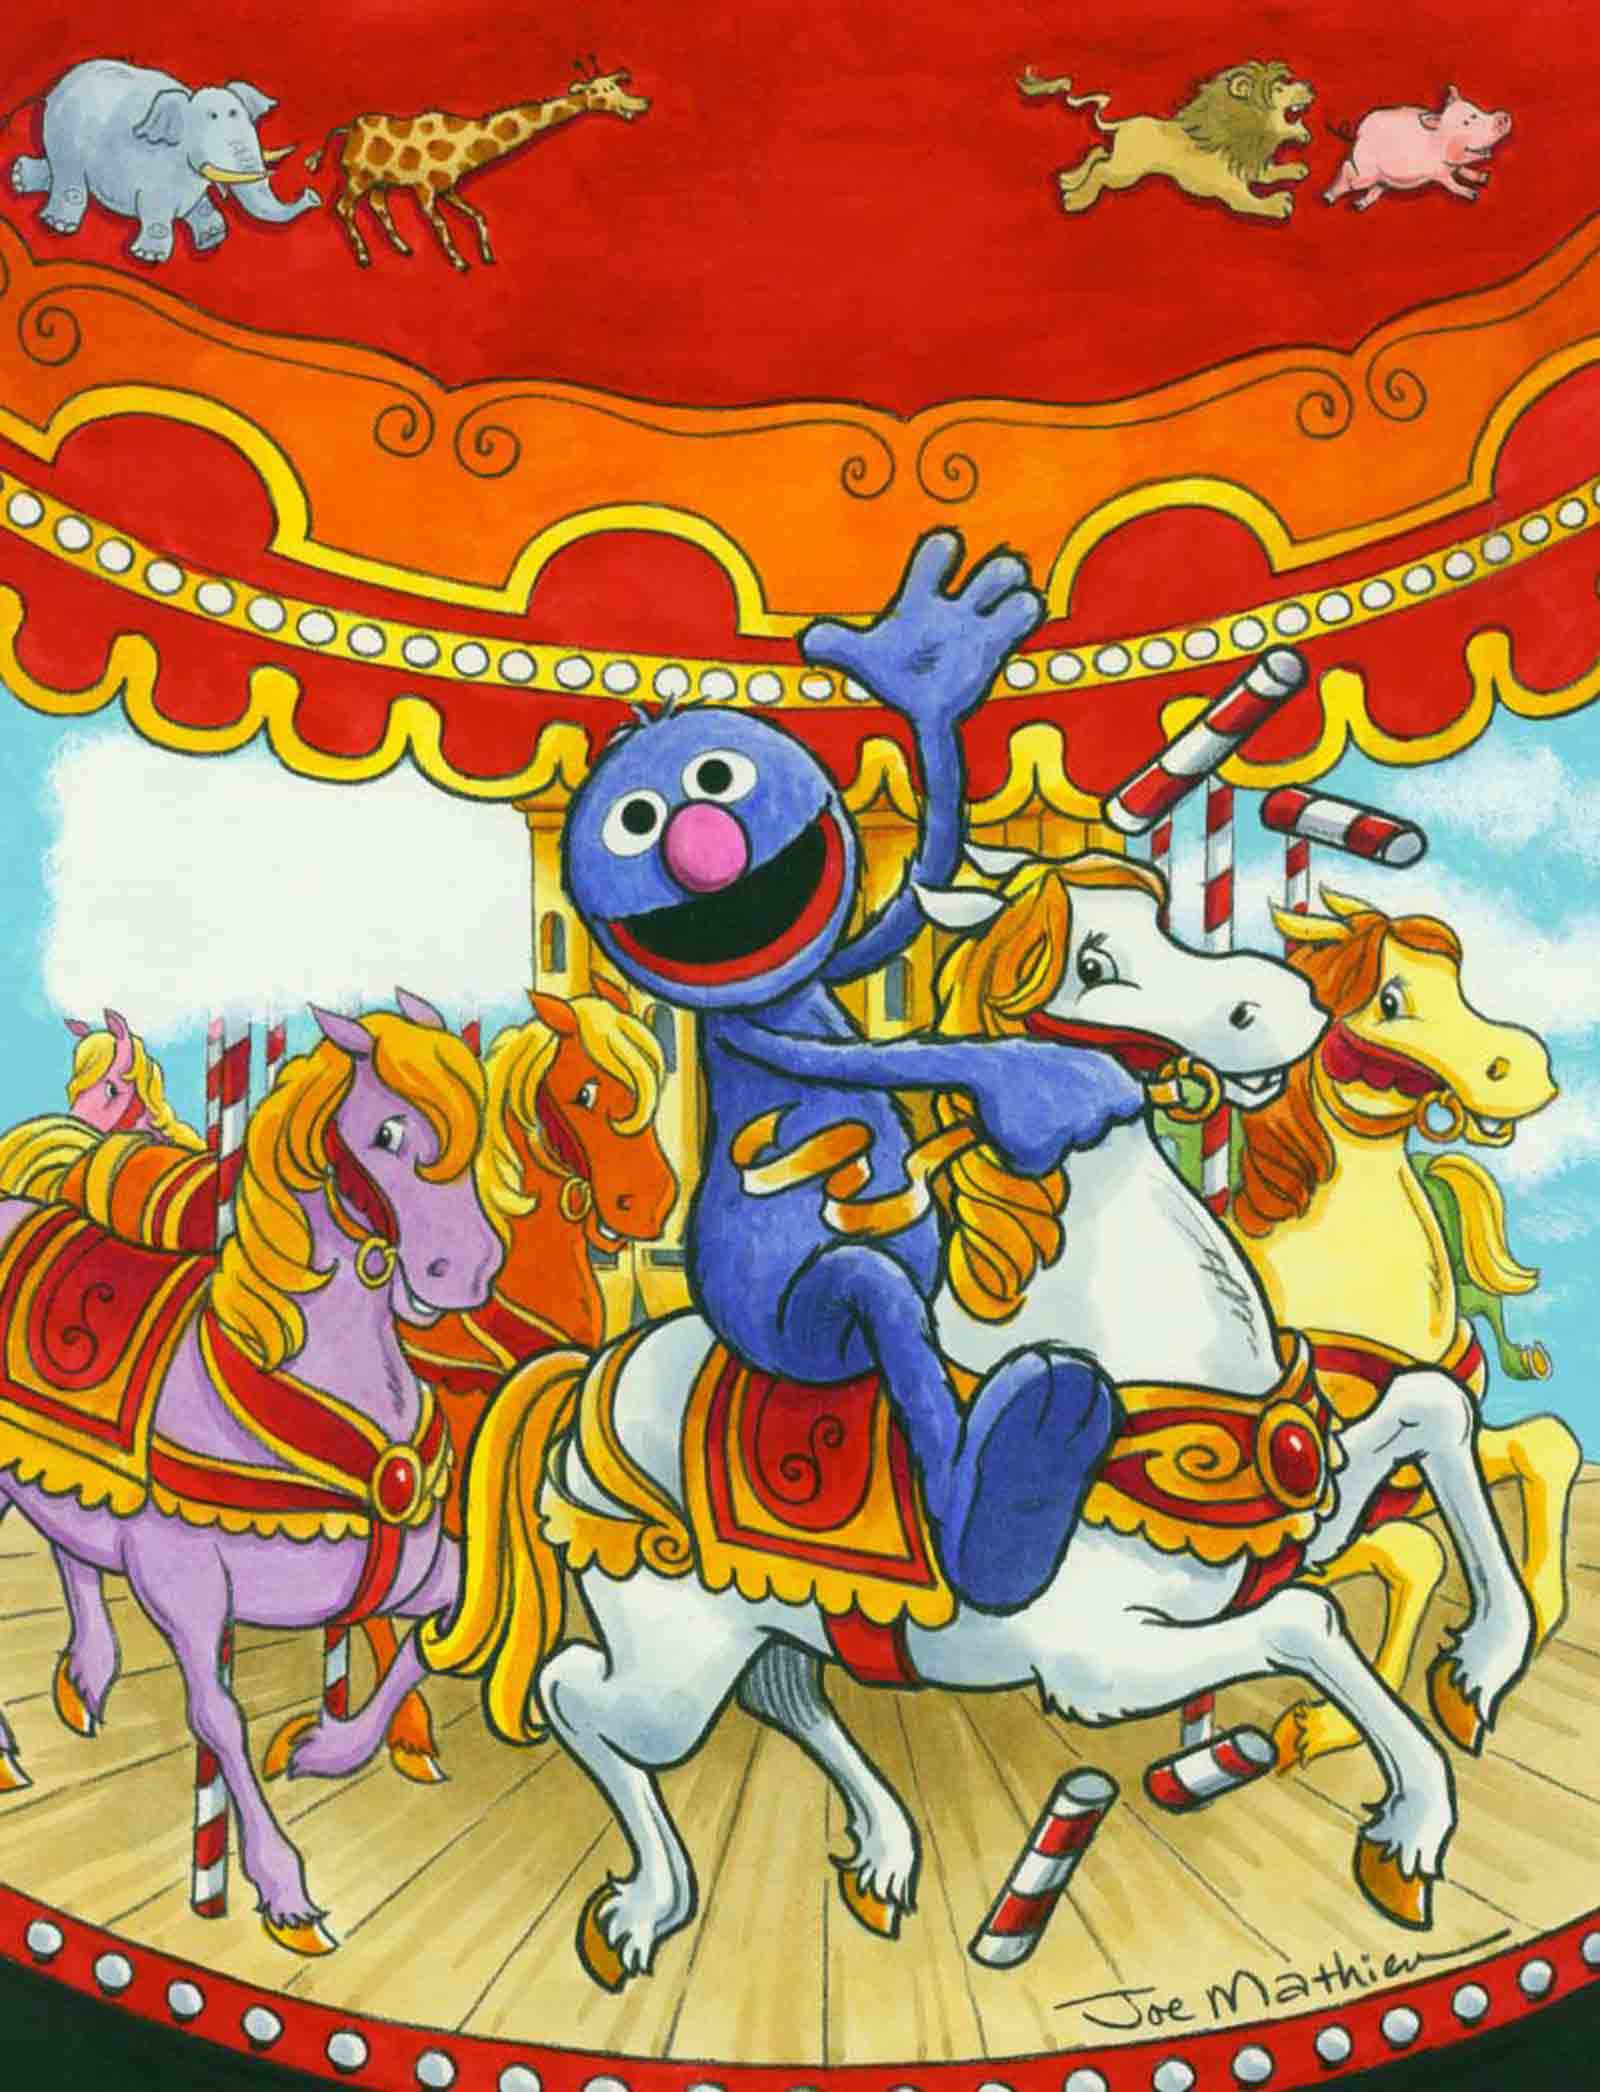 Grover on a Carousel